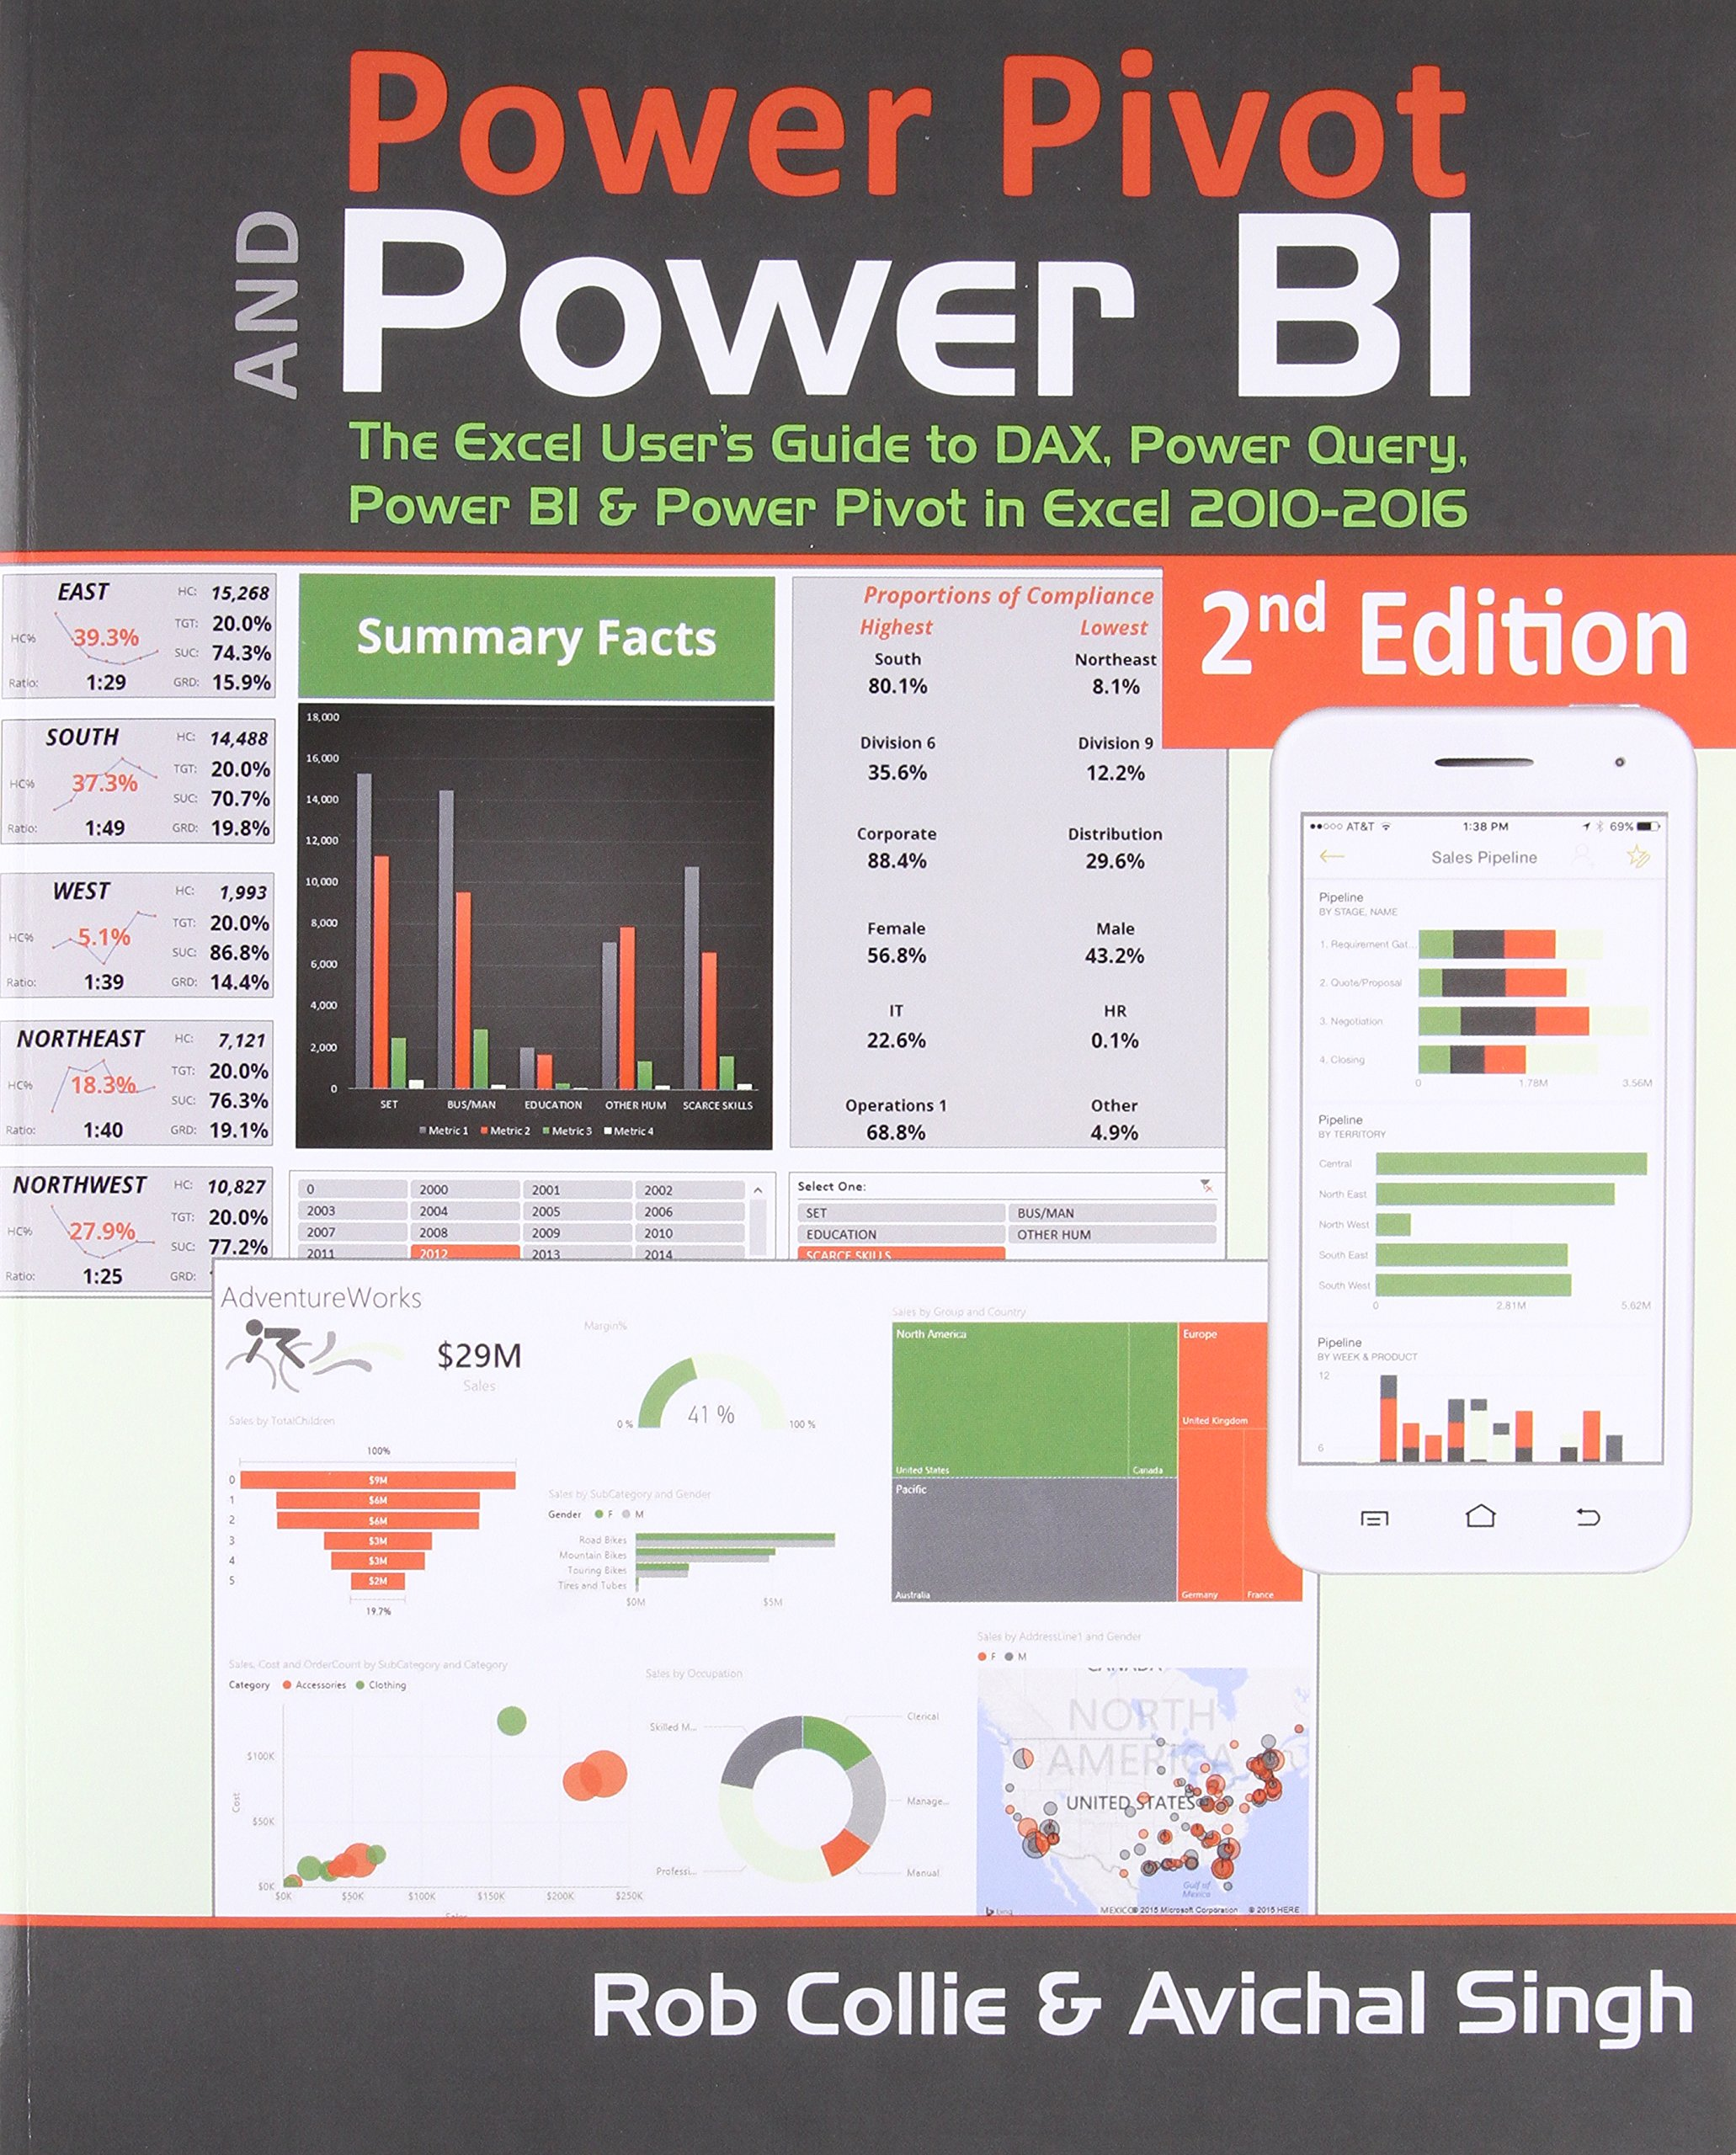 Power Pivot and Power BI: The Excel User's Guide to DAX, Power Query, Power BI & Power Pivot in Excel 2010-2016 by Holy Macro! Books